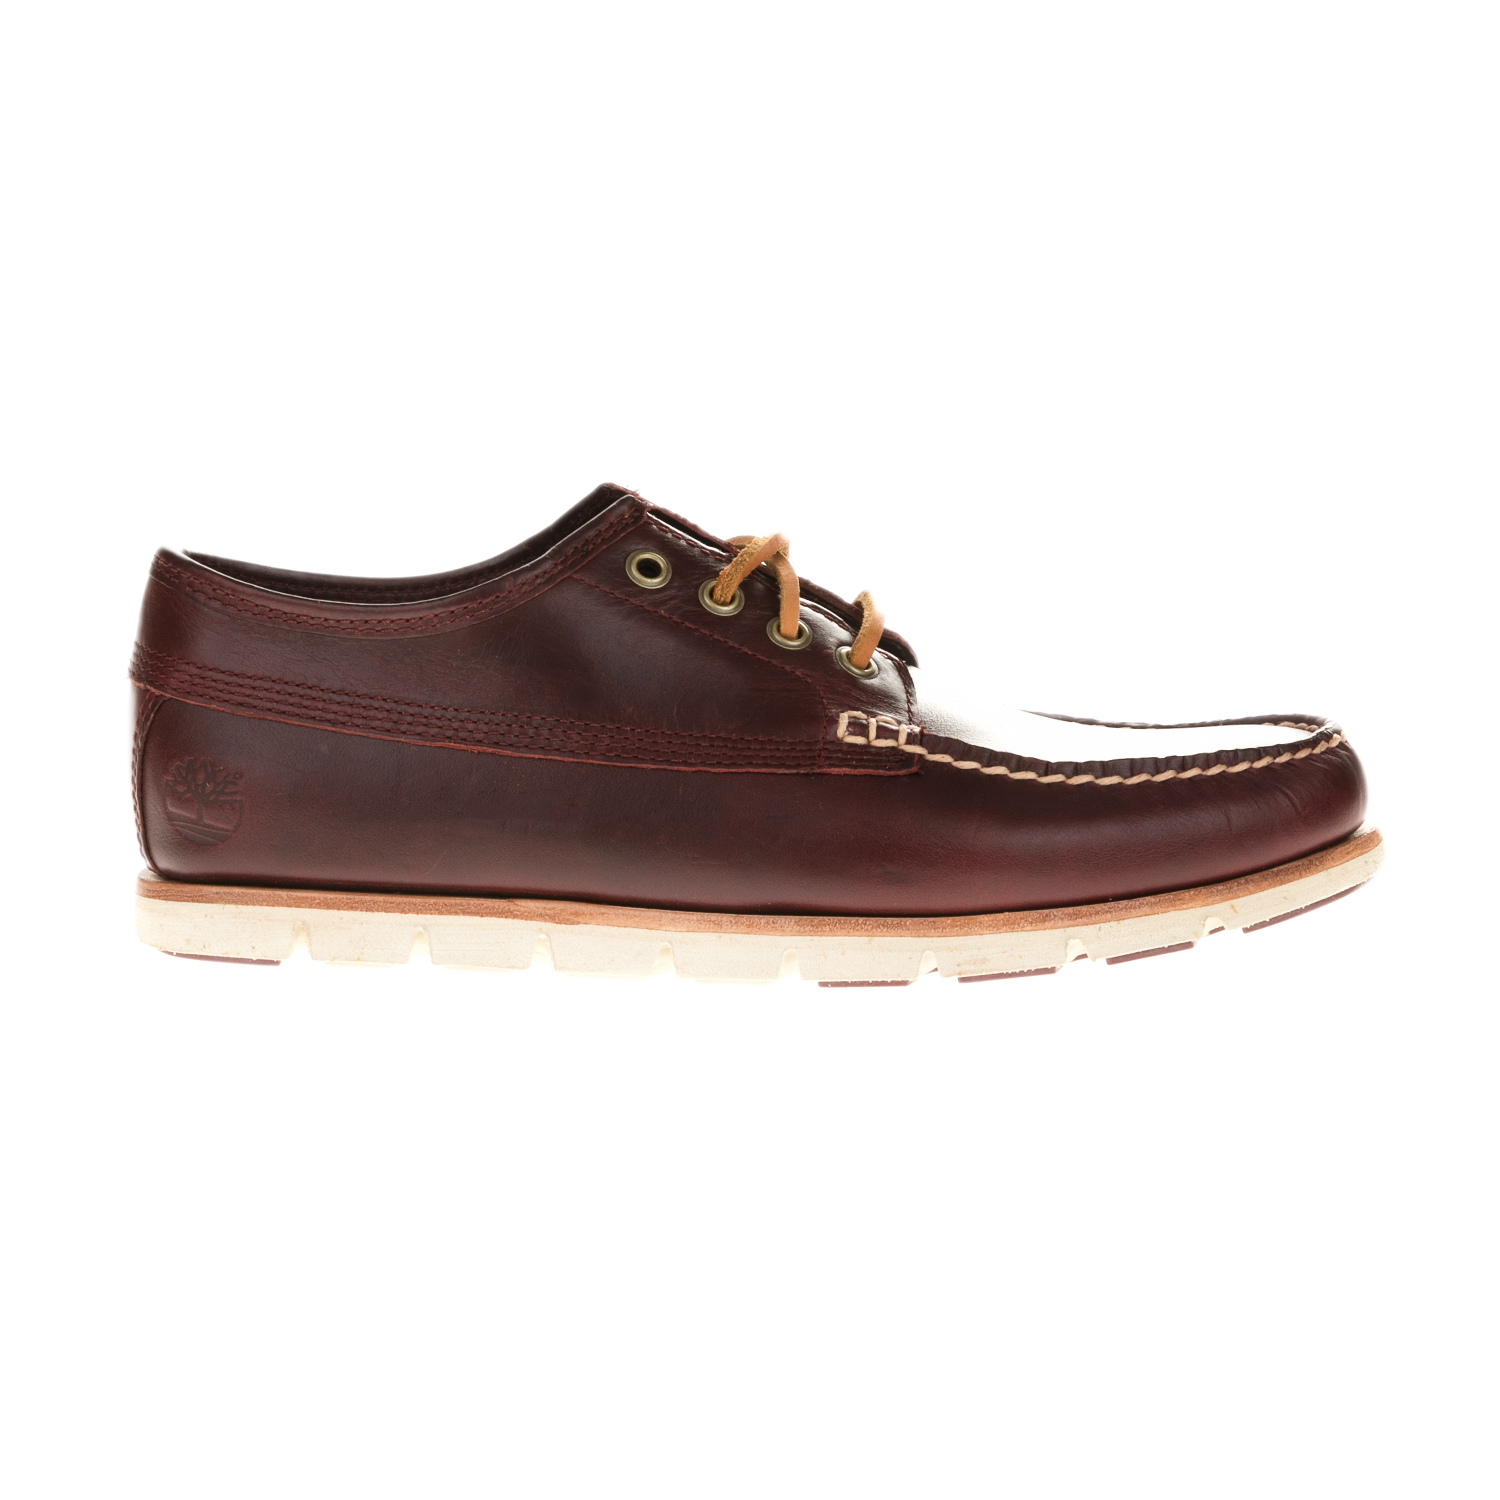 TIMBERLAND - Ανδρικά boat shoes TIMBERLAND A1BHB καφέ ανδρικά παπούτσια boat shoes